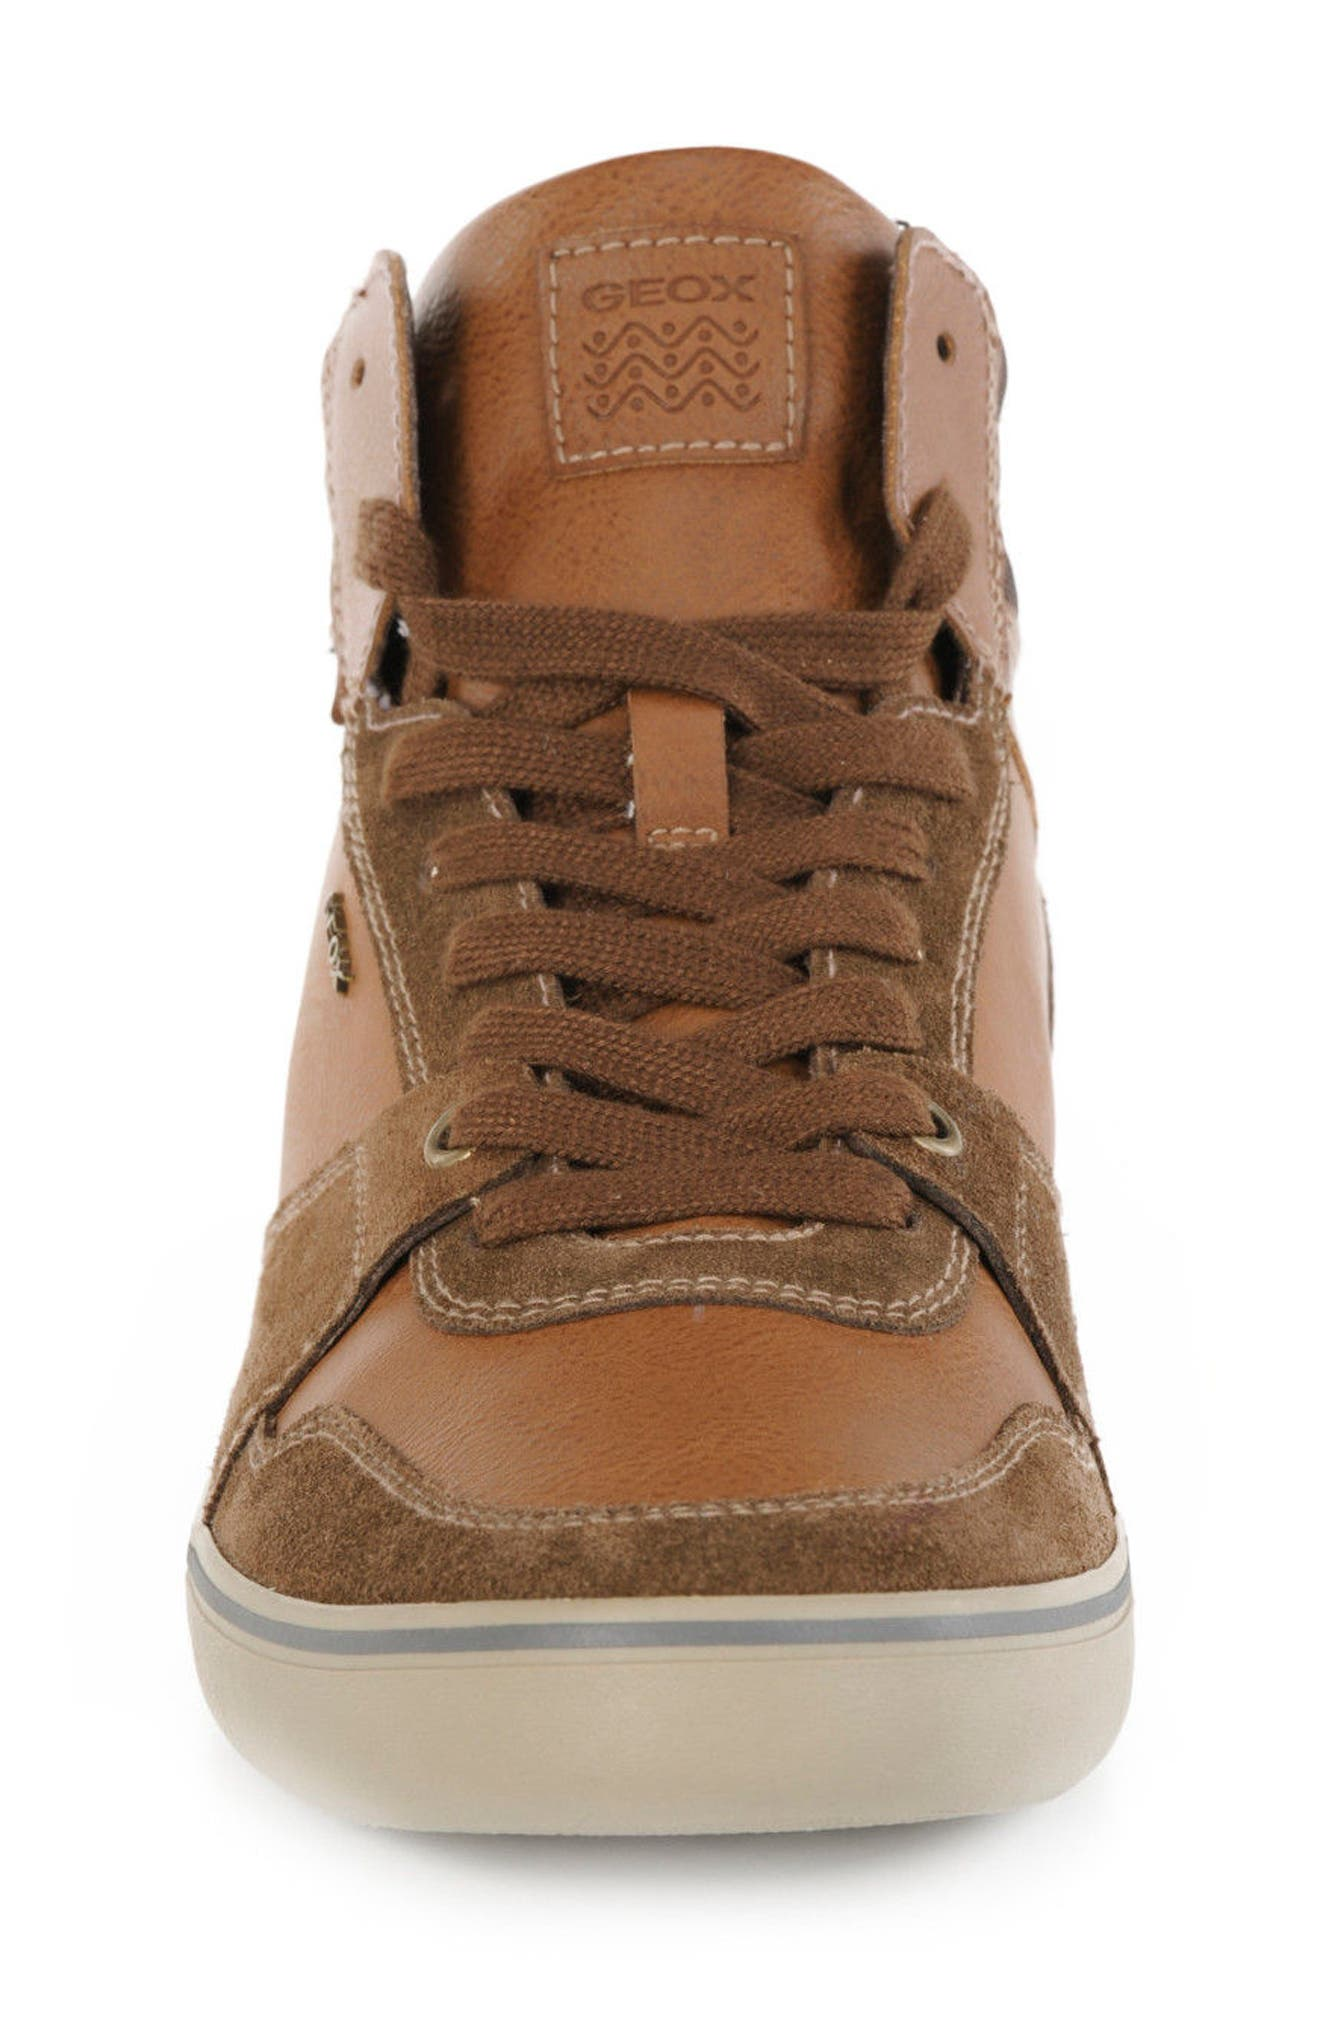 Box 30 High Top Sneaker,                             Alternate thumbnail 5, color,                             Ebony/ Brown Cotto